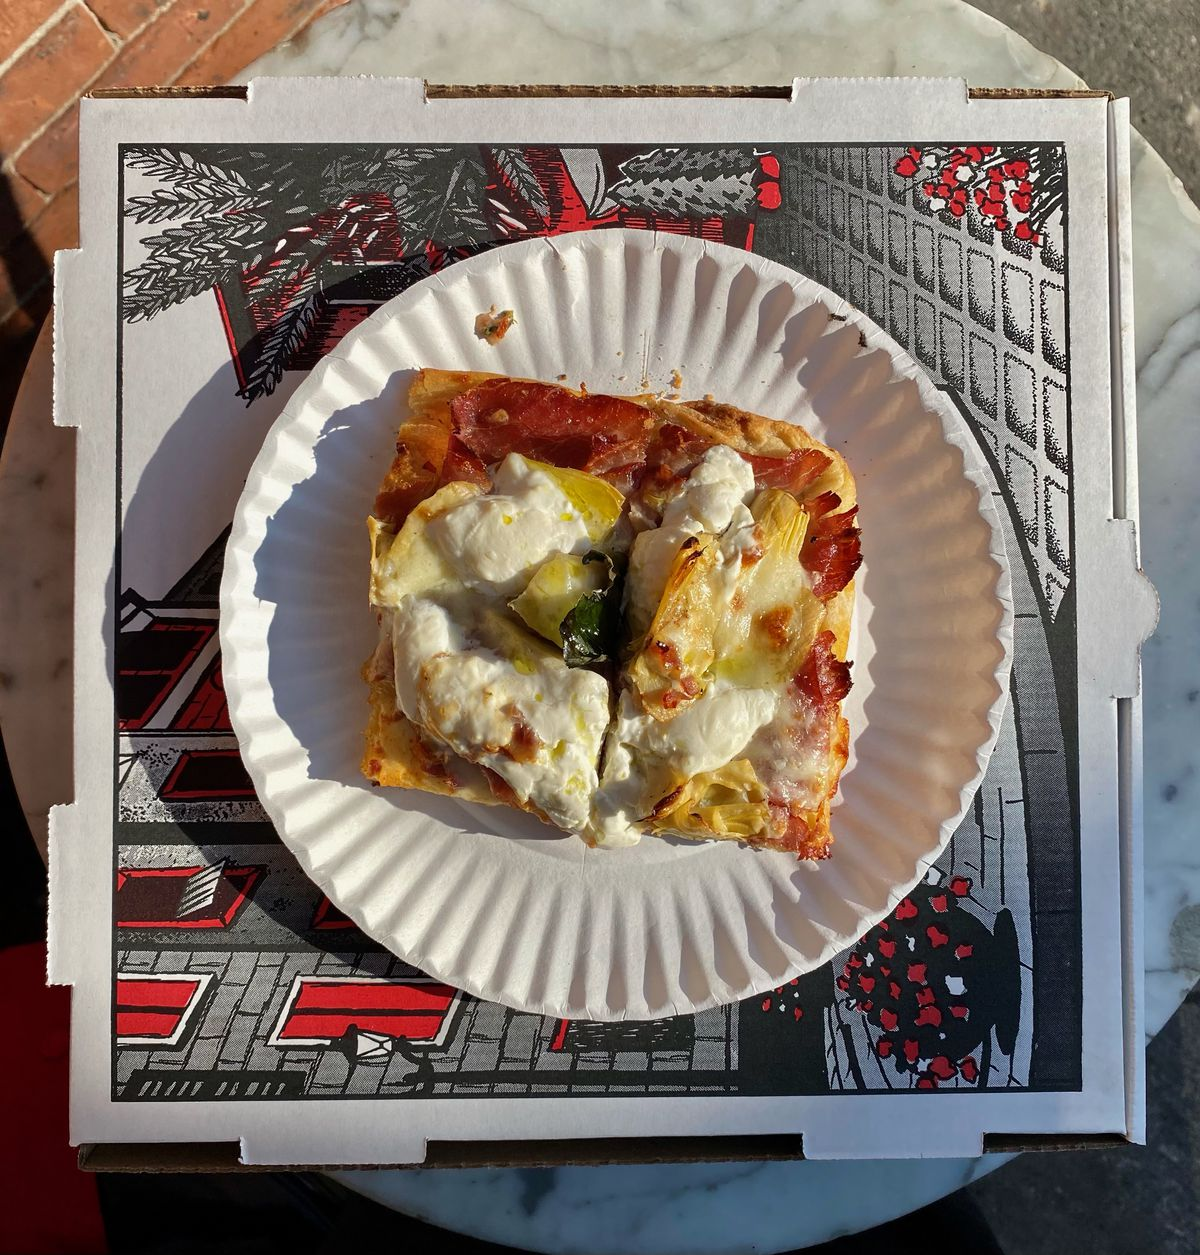 An overhead photograph of a slice of pizza on a plate, perched on a pizza box outdoors